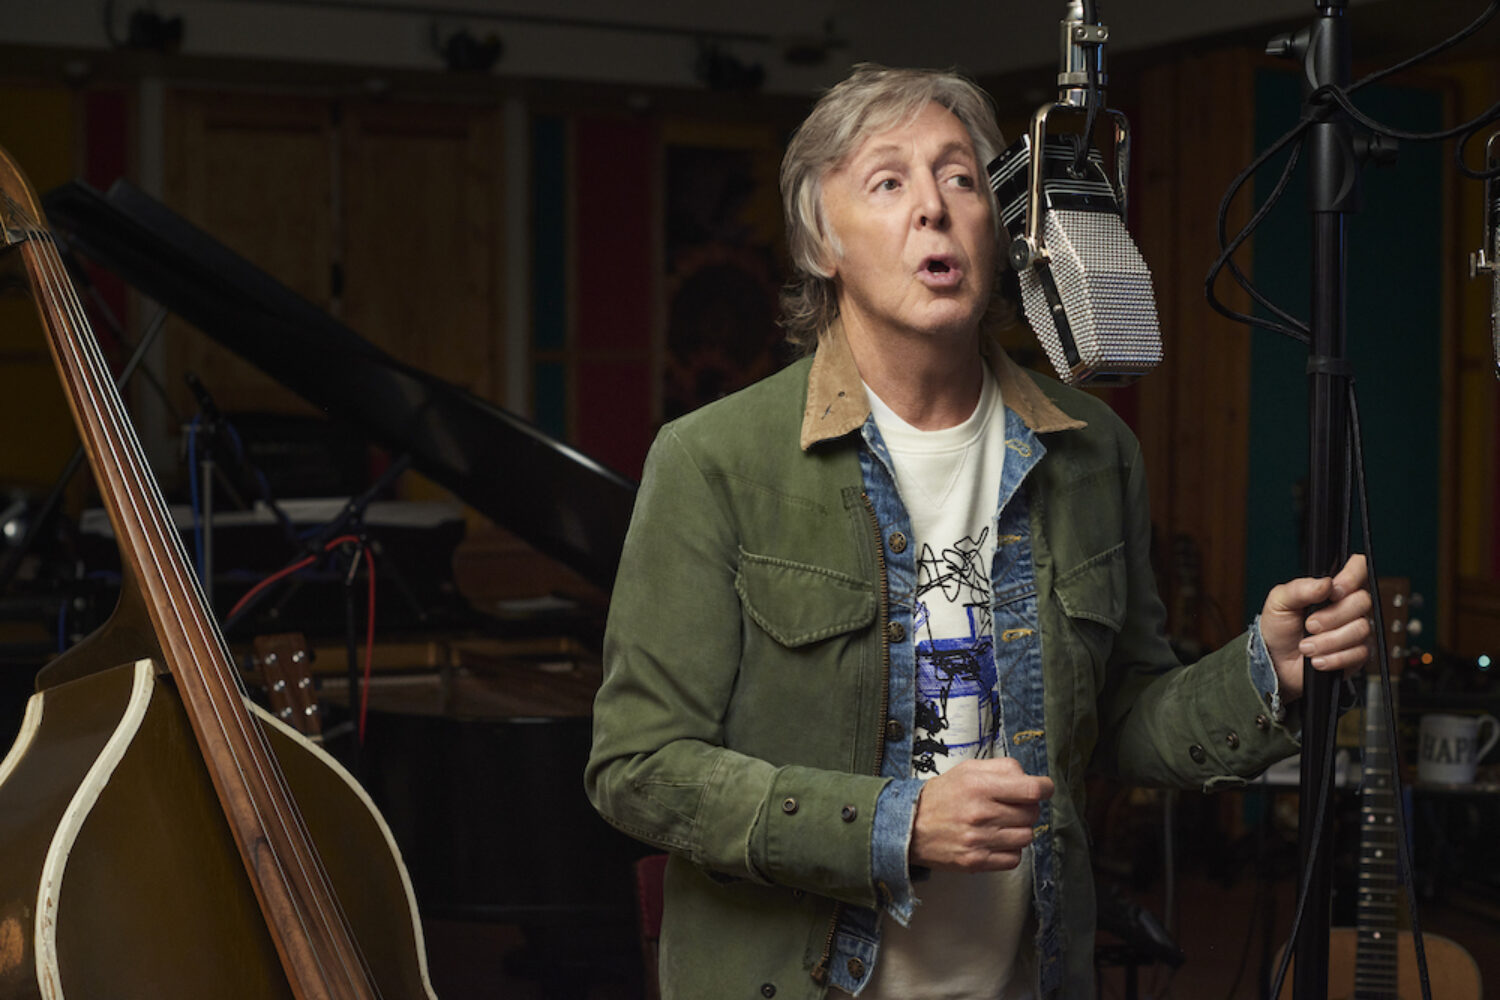 Paul McCartney confirms 'McCartney III Imagined'